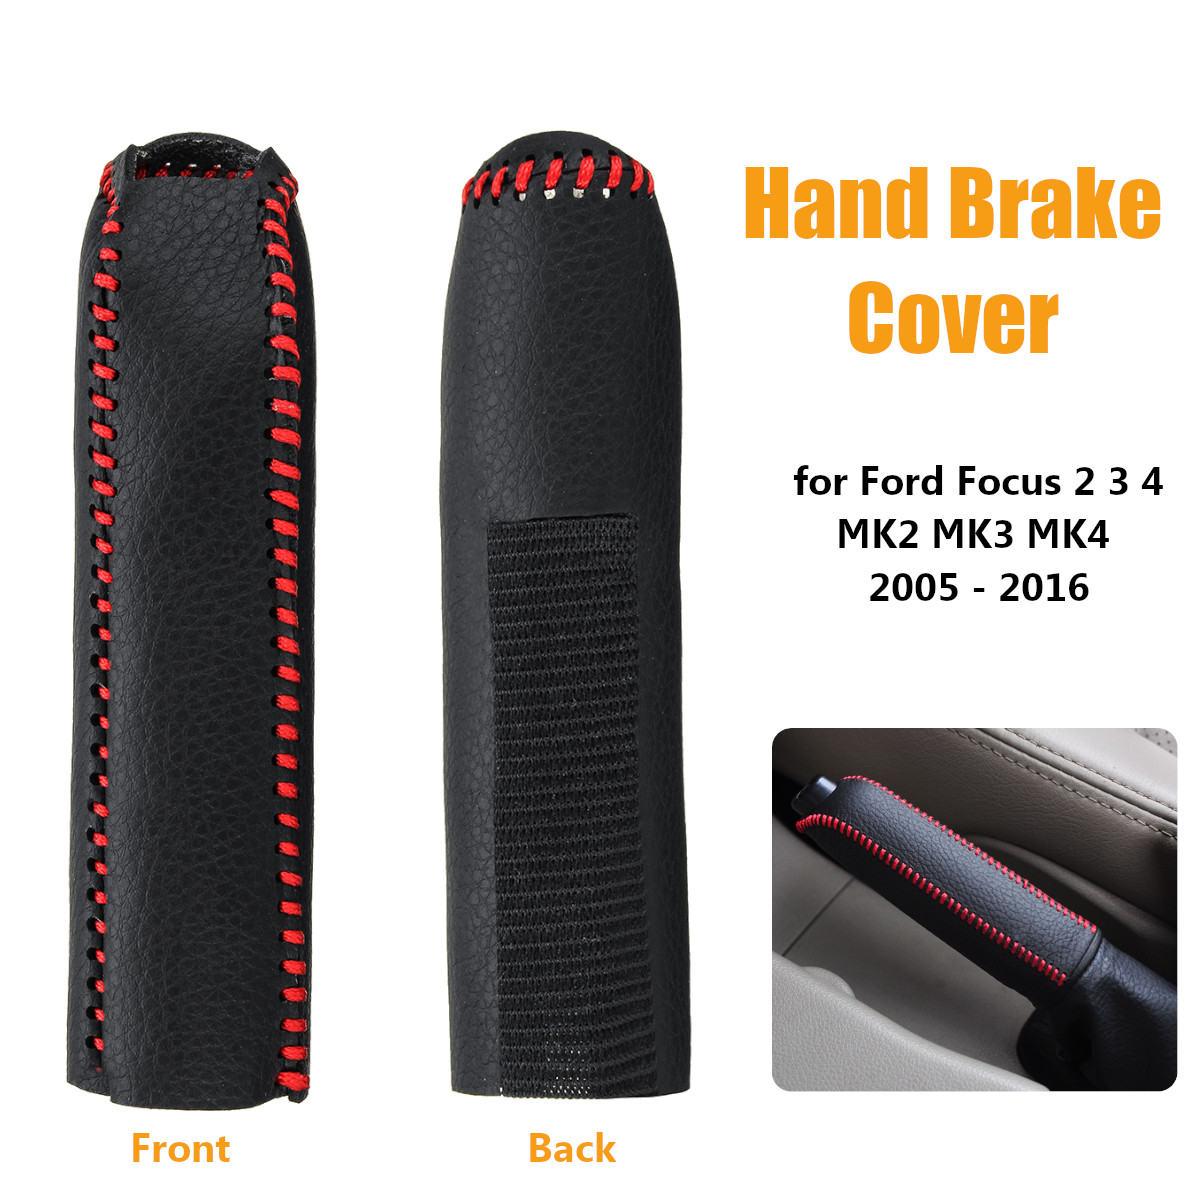 Car PU Leather Hand Brake Grip Cover For Ford For Focus 2 3 4 MK2 MK3 MK4 2005 - 2016